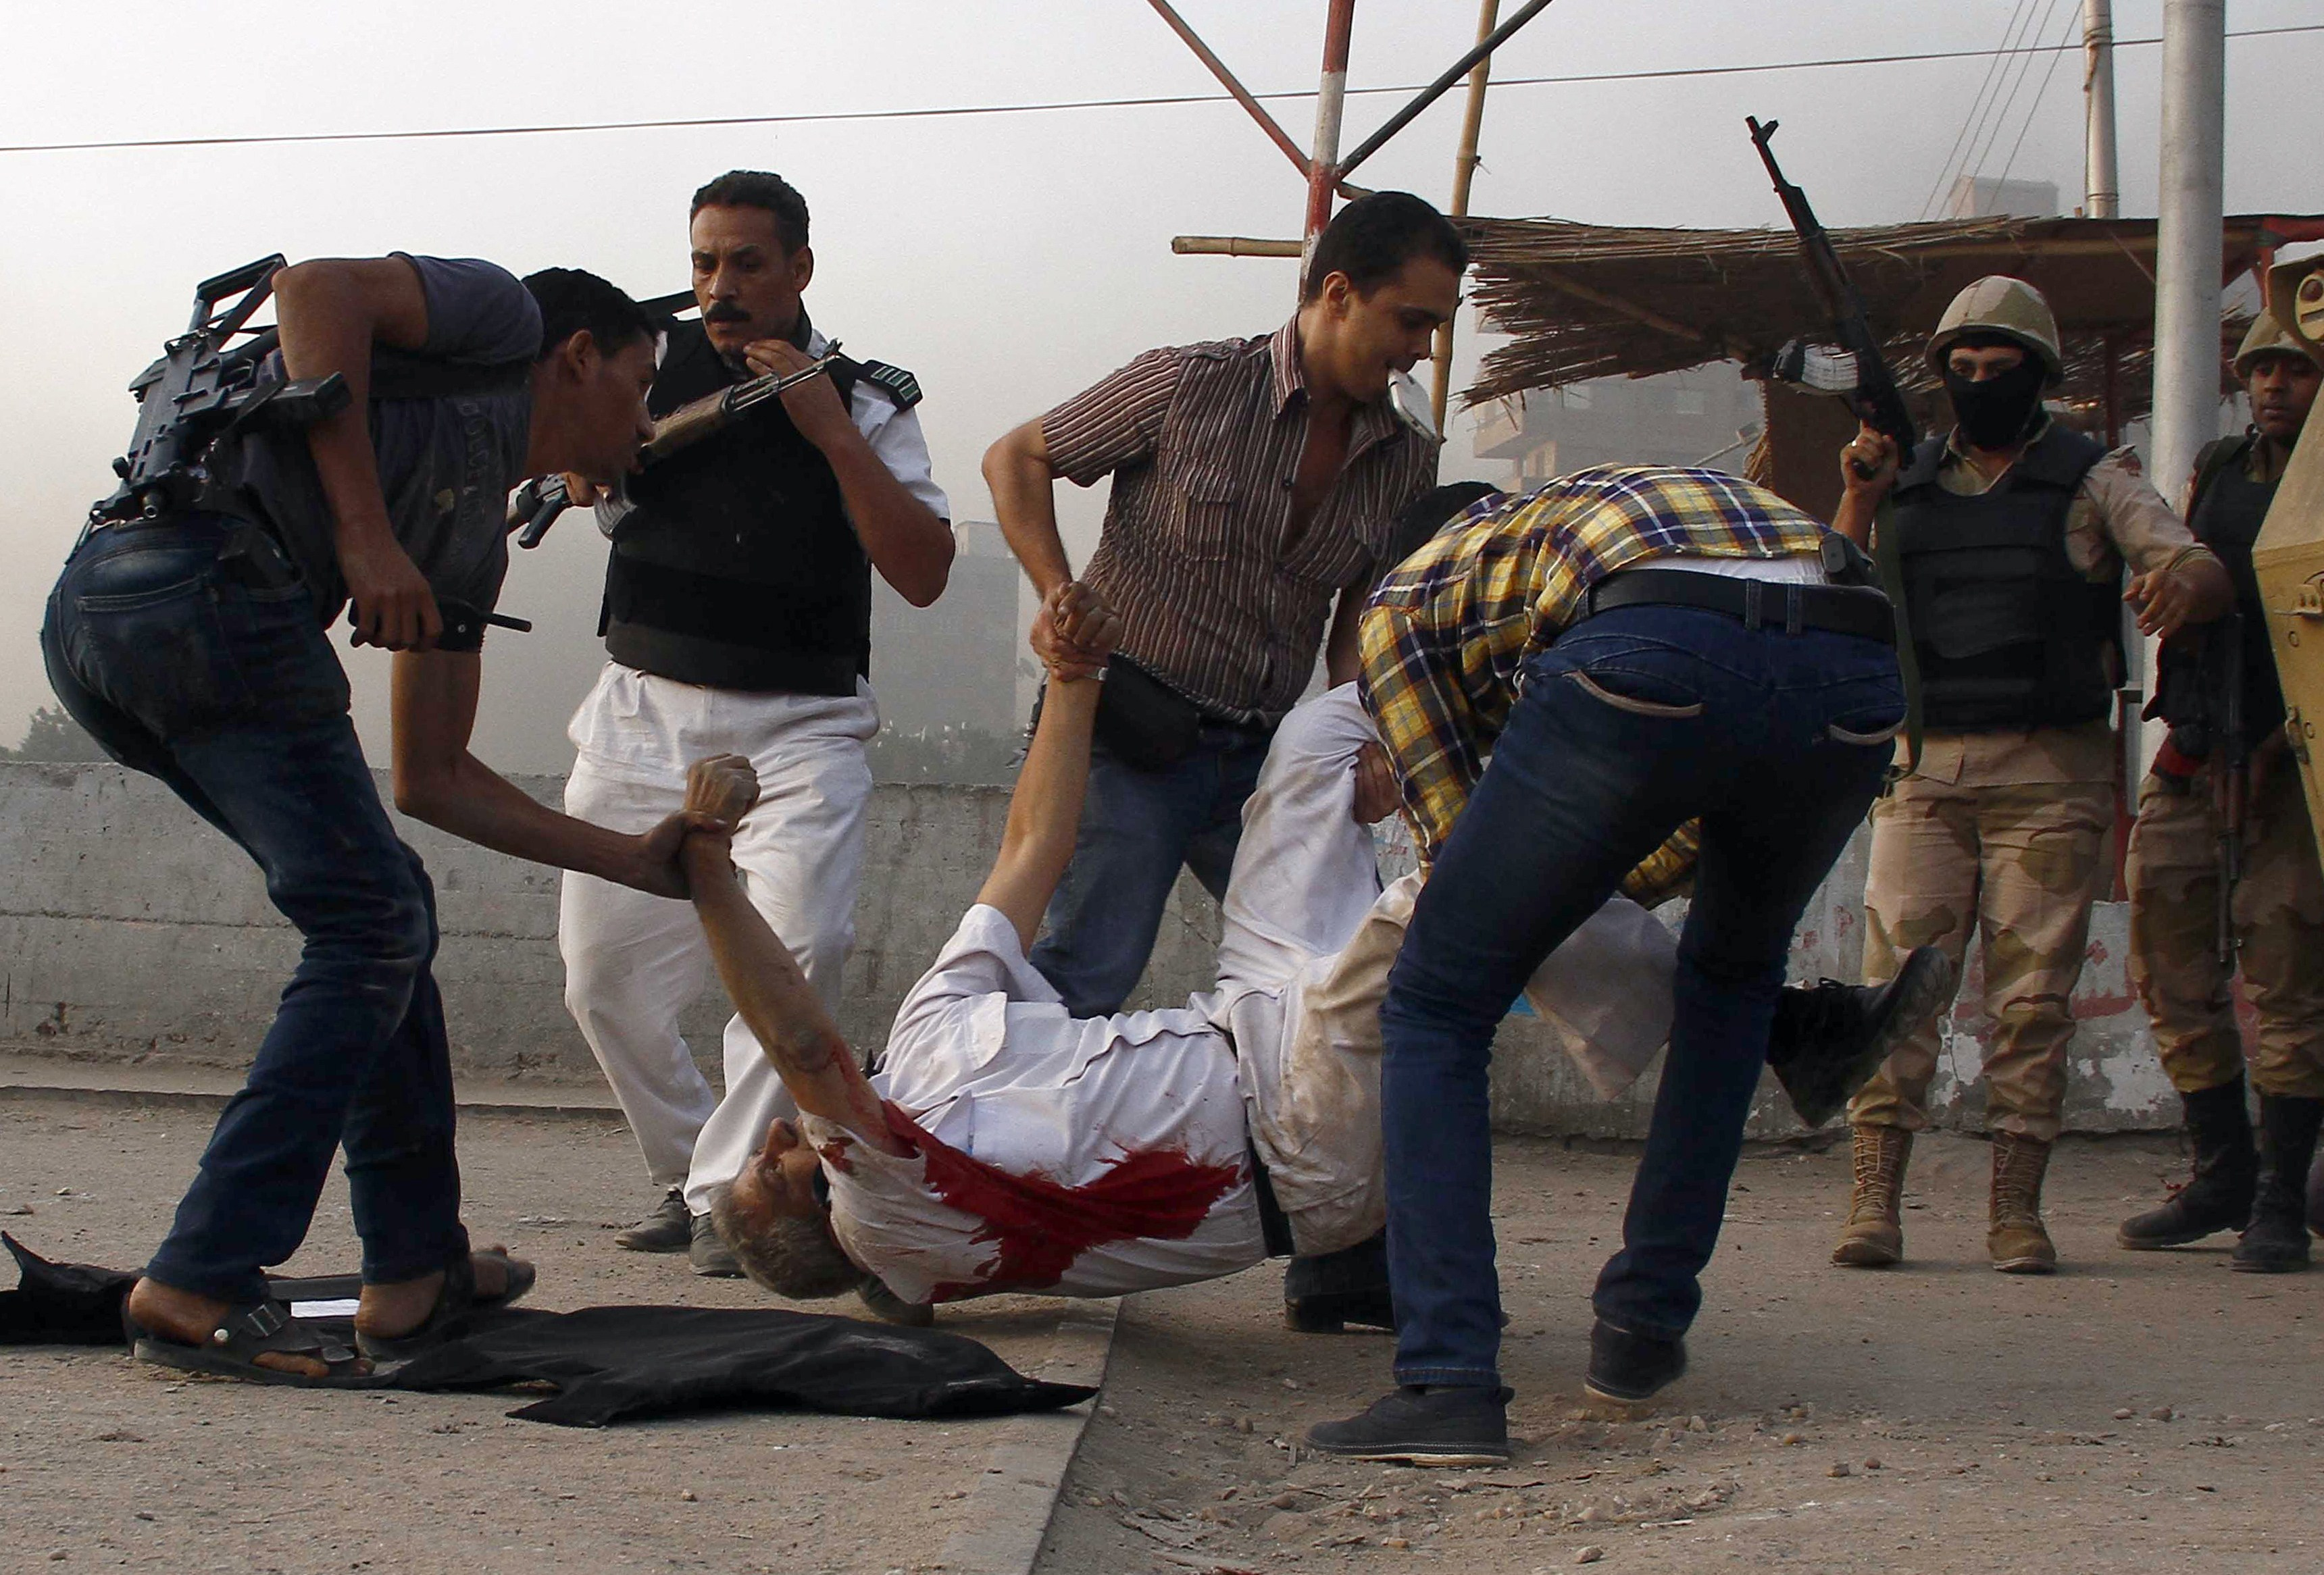 Egyptian policemen evacuate Giza security chief Nabil Farrag after he was shot during a raid in the village of Kerdassah on the outskirts of Cairo, on September 19, 2013. Farrag was killed when Egyptian security forces stormed Kerdassah in the latest crackdown on Islamist militants, security officials said.  (AFP PHOTO / AHMED ALI)